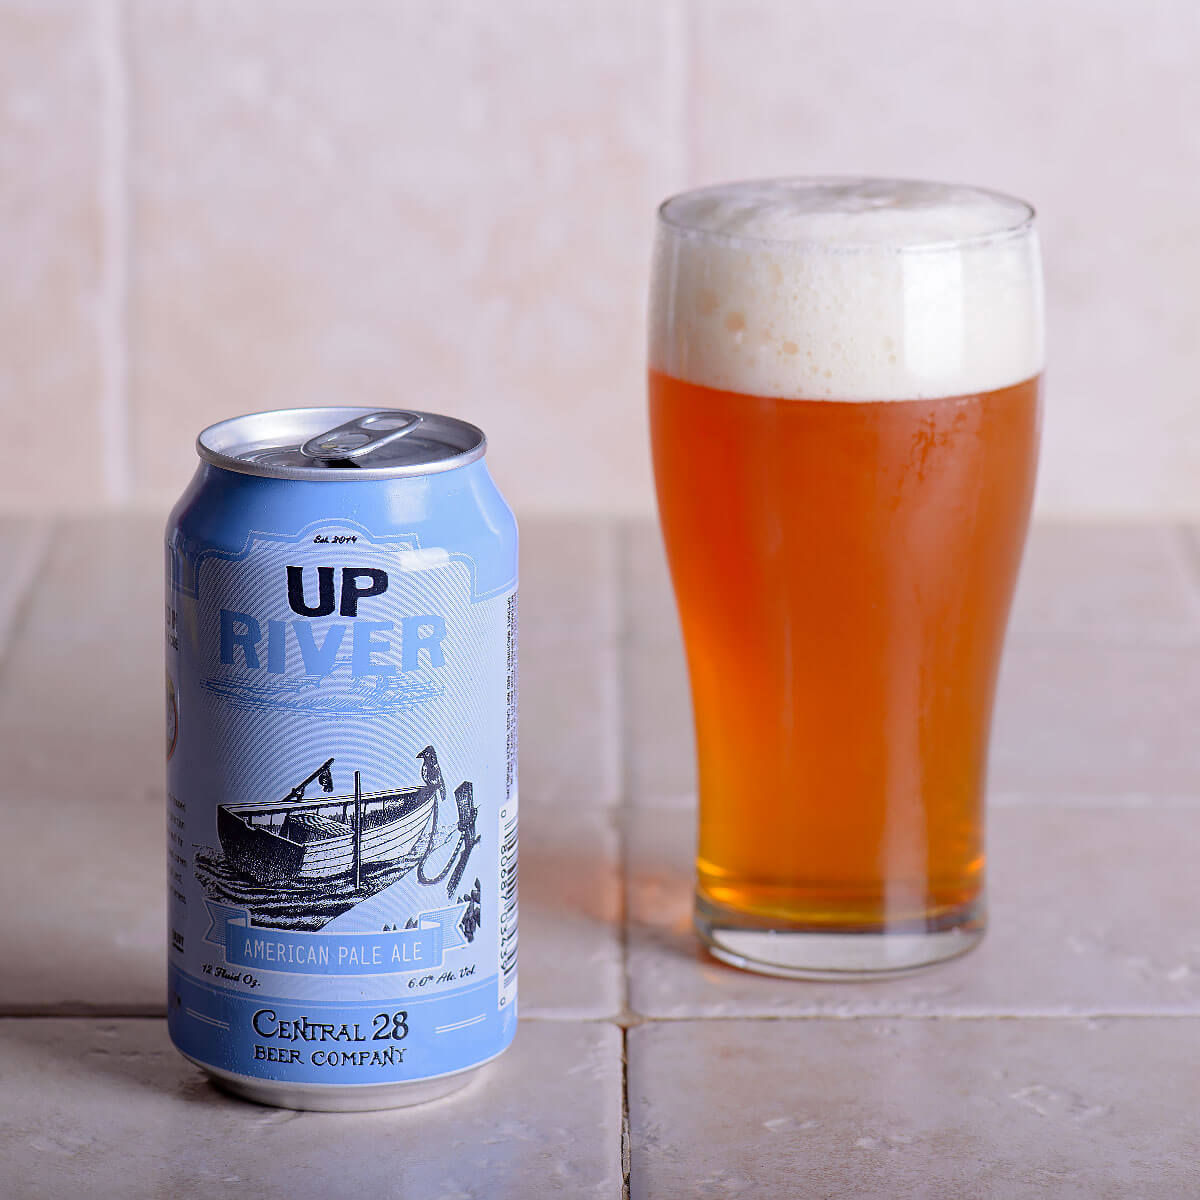 Up River, an American Pale Ale by Central 28 Beer Company